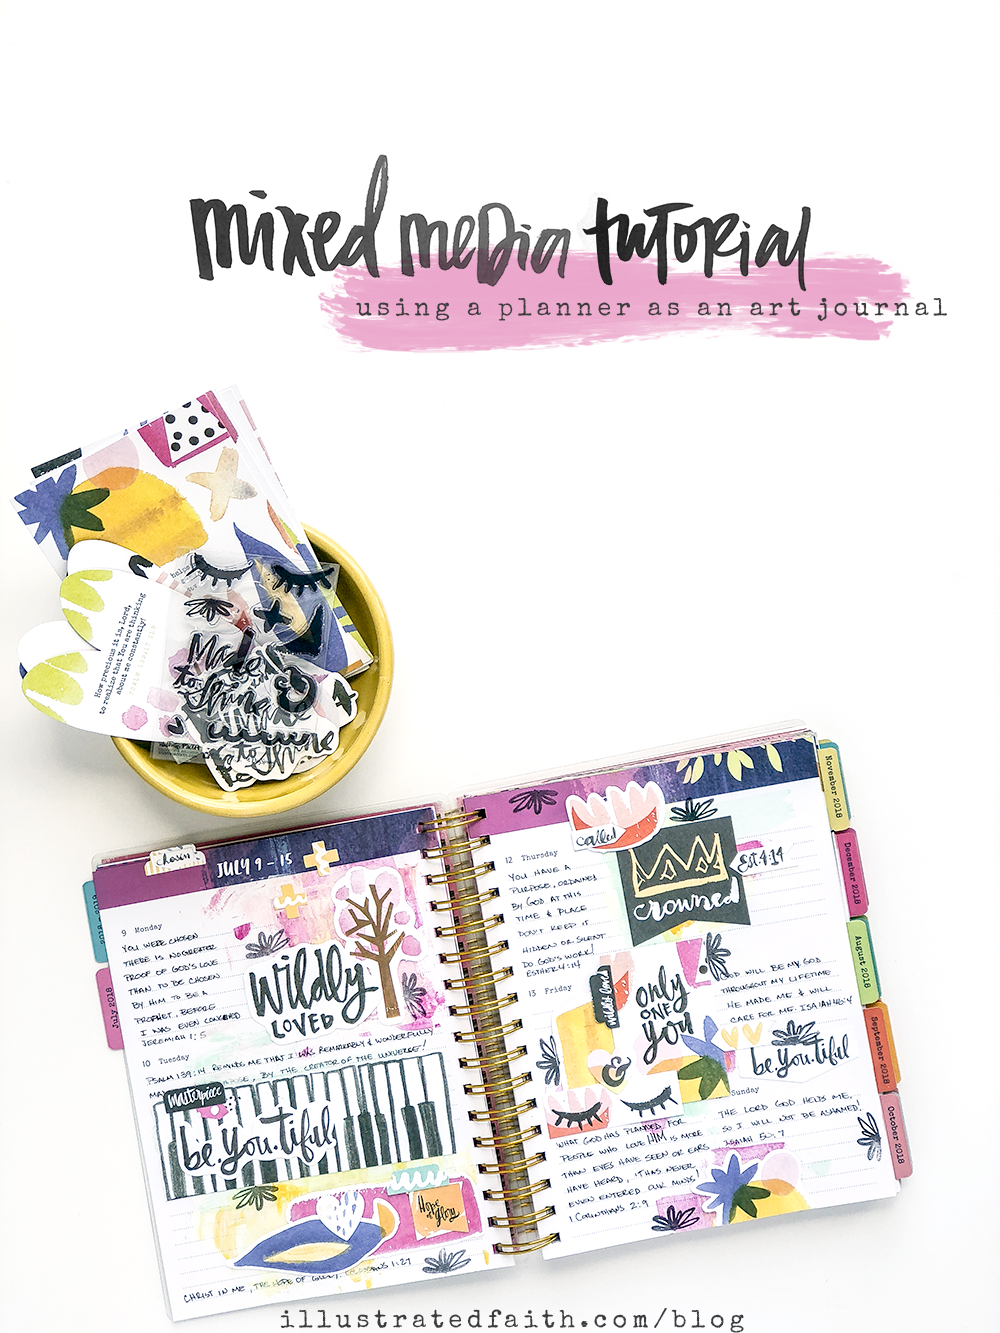 Mixed Media Tutorial by Heather Greenwood - Using a Planner as an Art Journal | Let's Go Through Our Leftover Devotional Kit Supplies